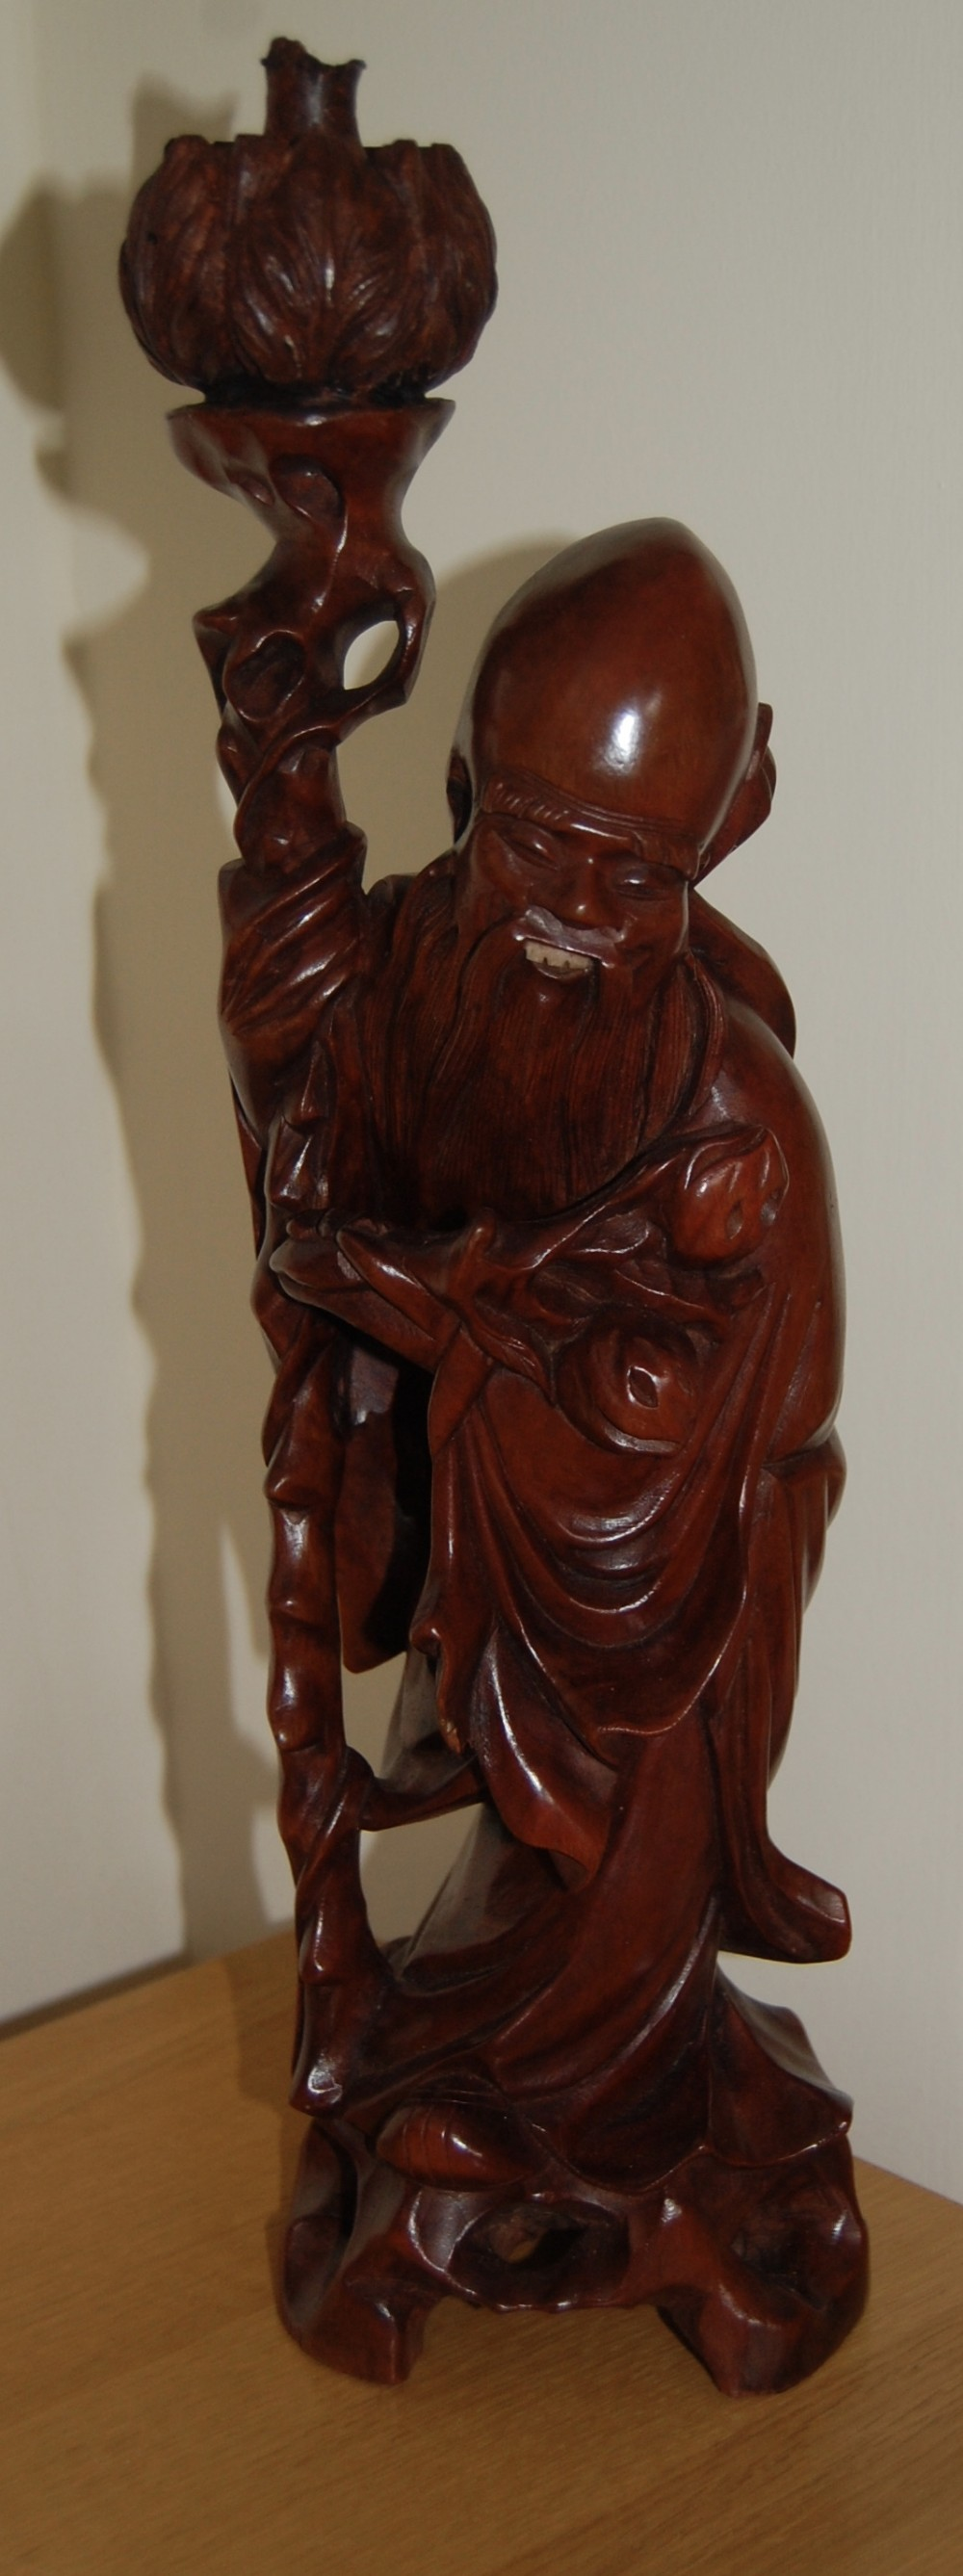 19th century chinese root carving